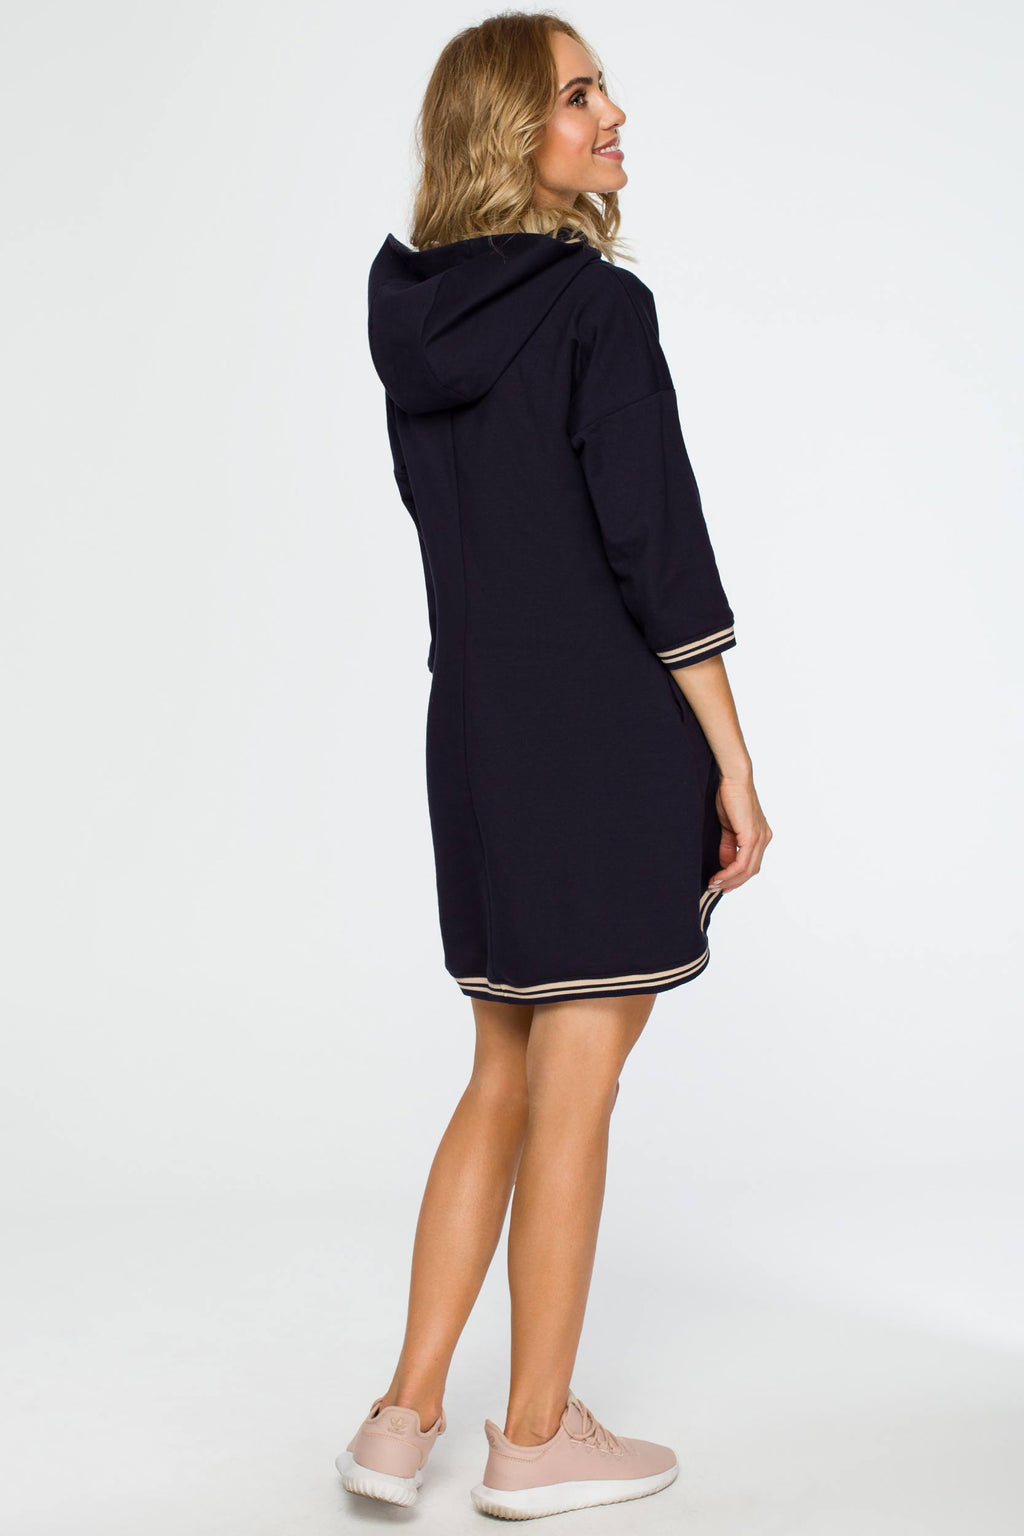 Navy Blue Tunic Hooded Dress With Contrast Details - So Chic Boutique